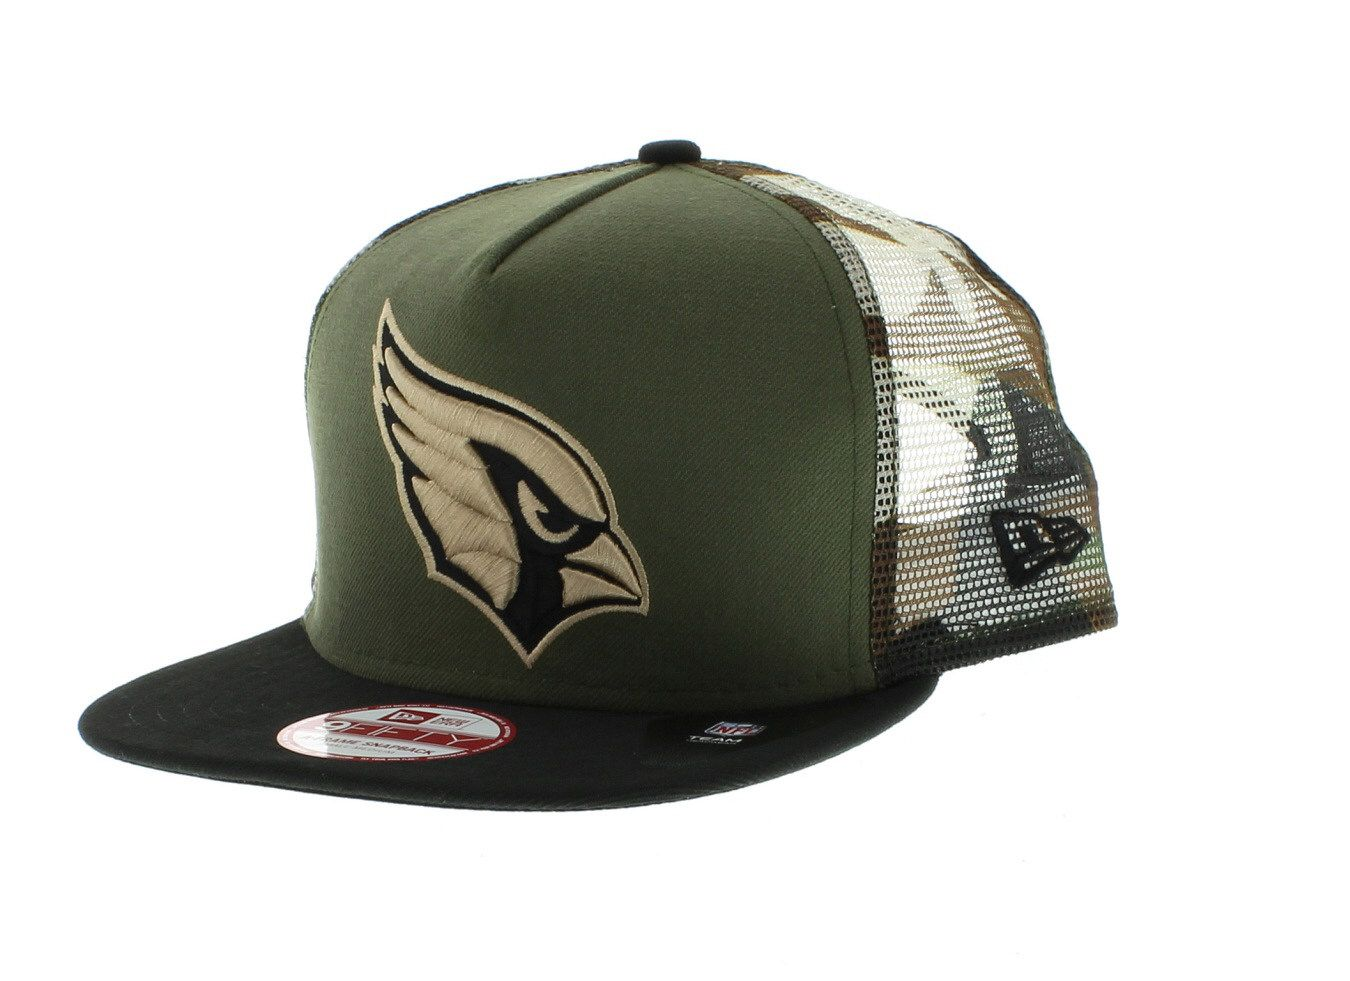 new concept 661d5 678fb ... coupon code for dope arizona cardinals hat cardinals hat arizona  cardinals new era cap bucket hat